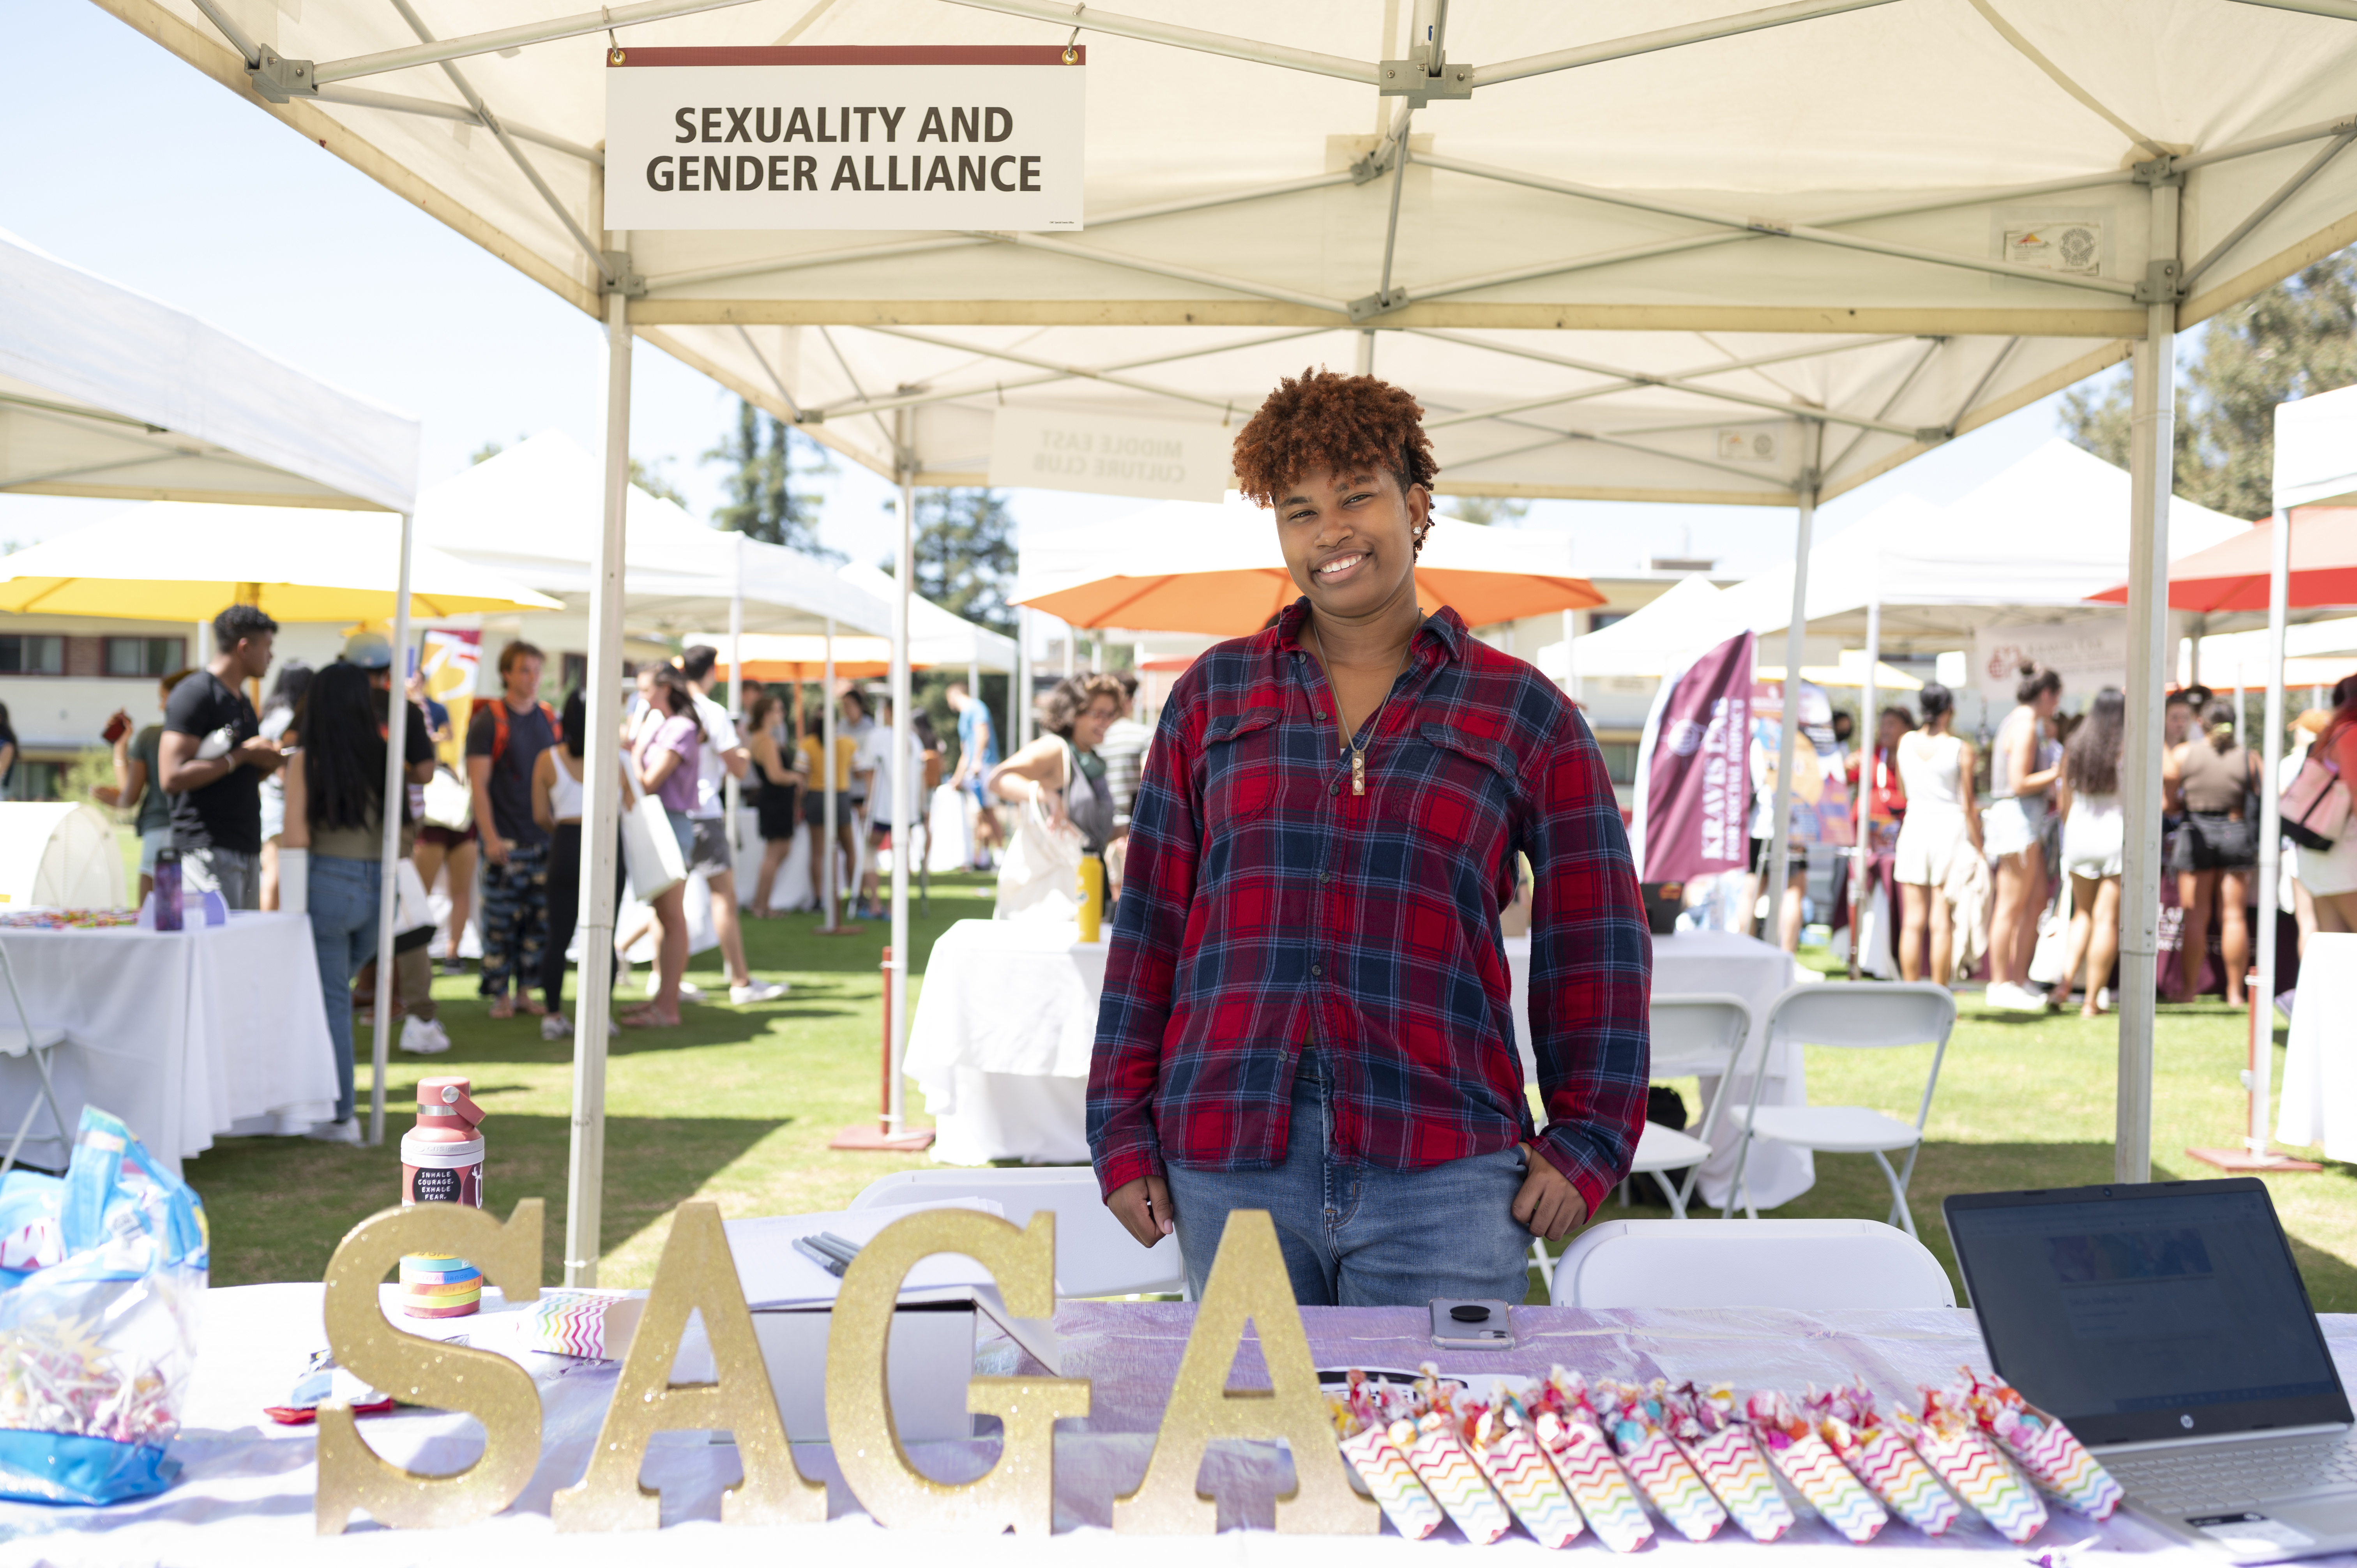 Jenasis Yarrell '24 shares information at the Sexuality and Gender Alliance booth.